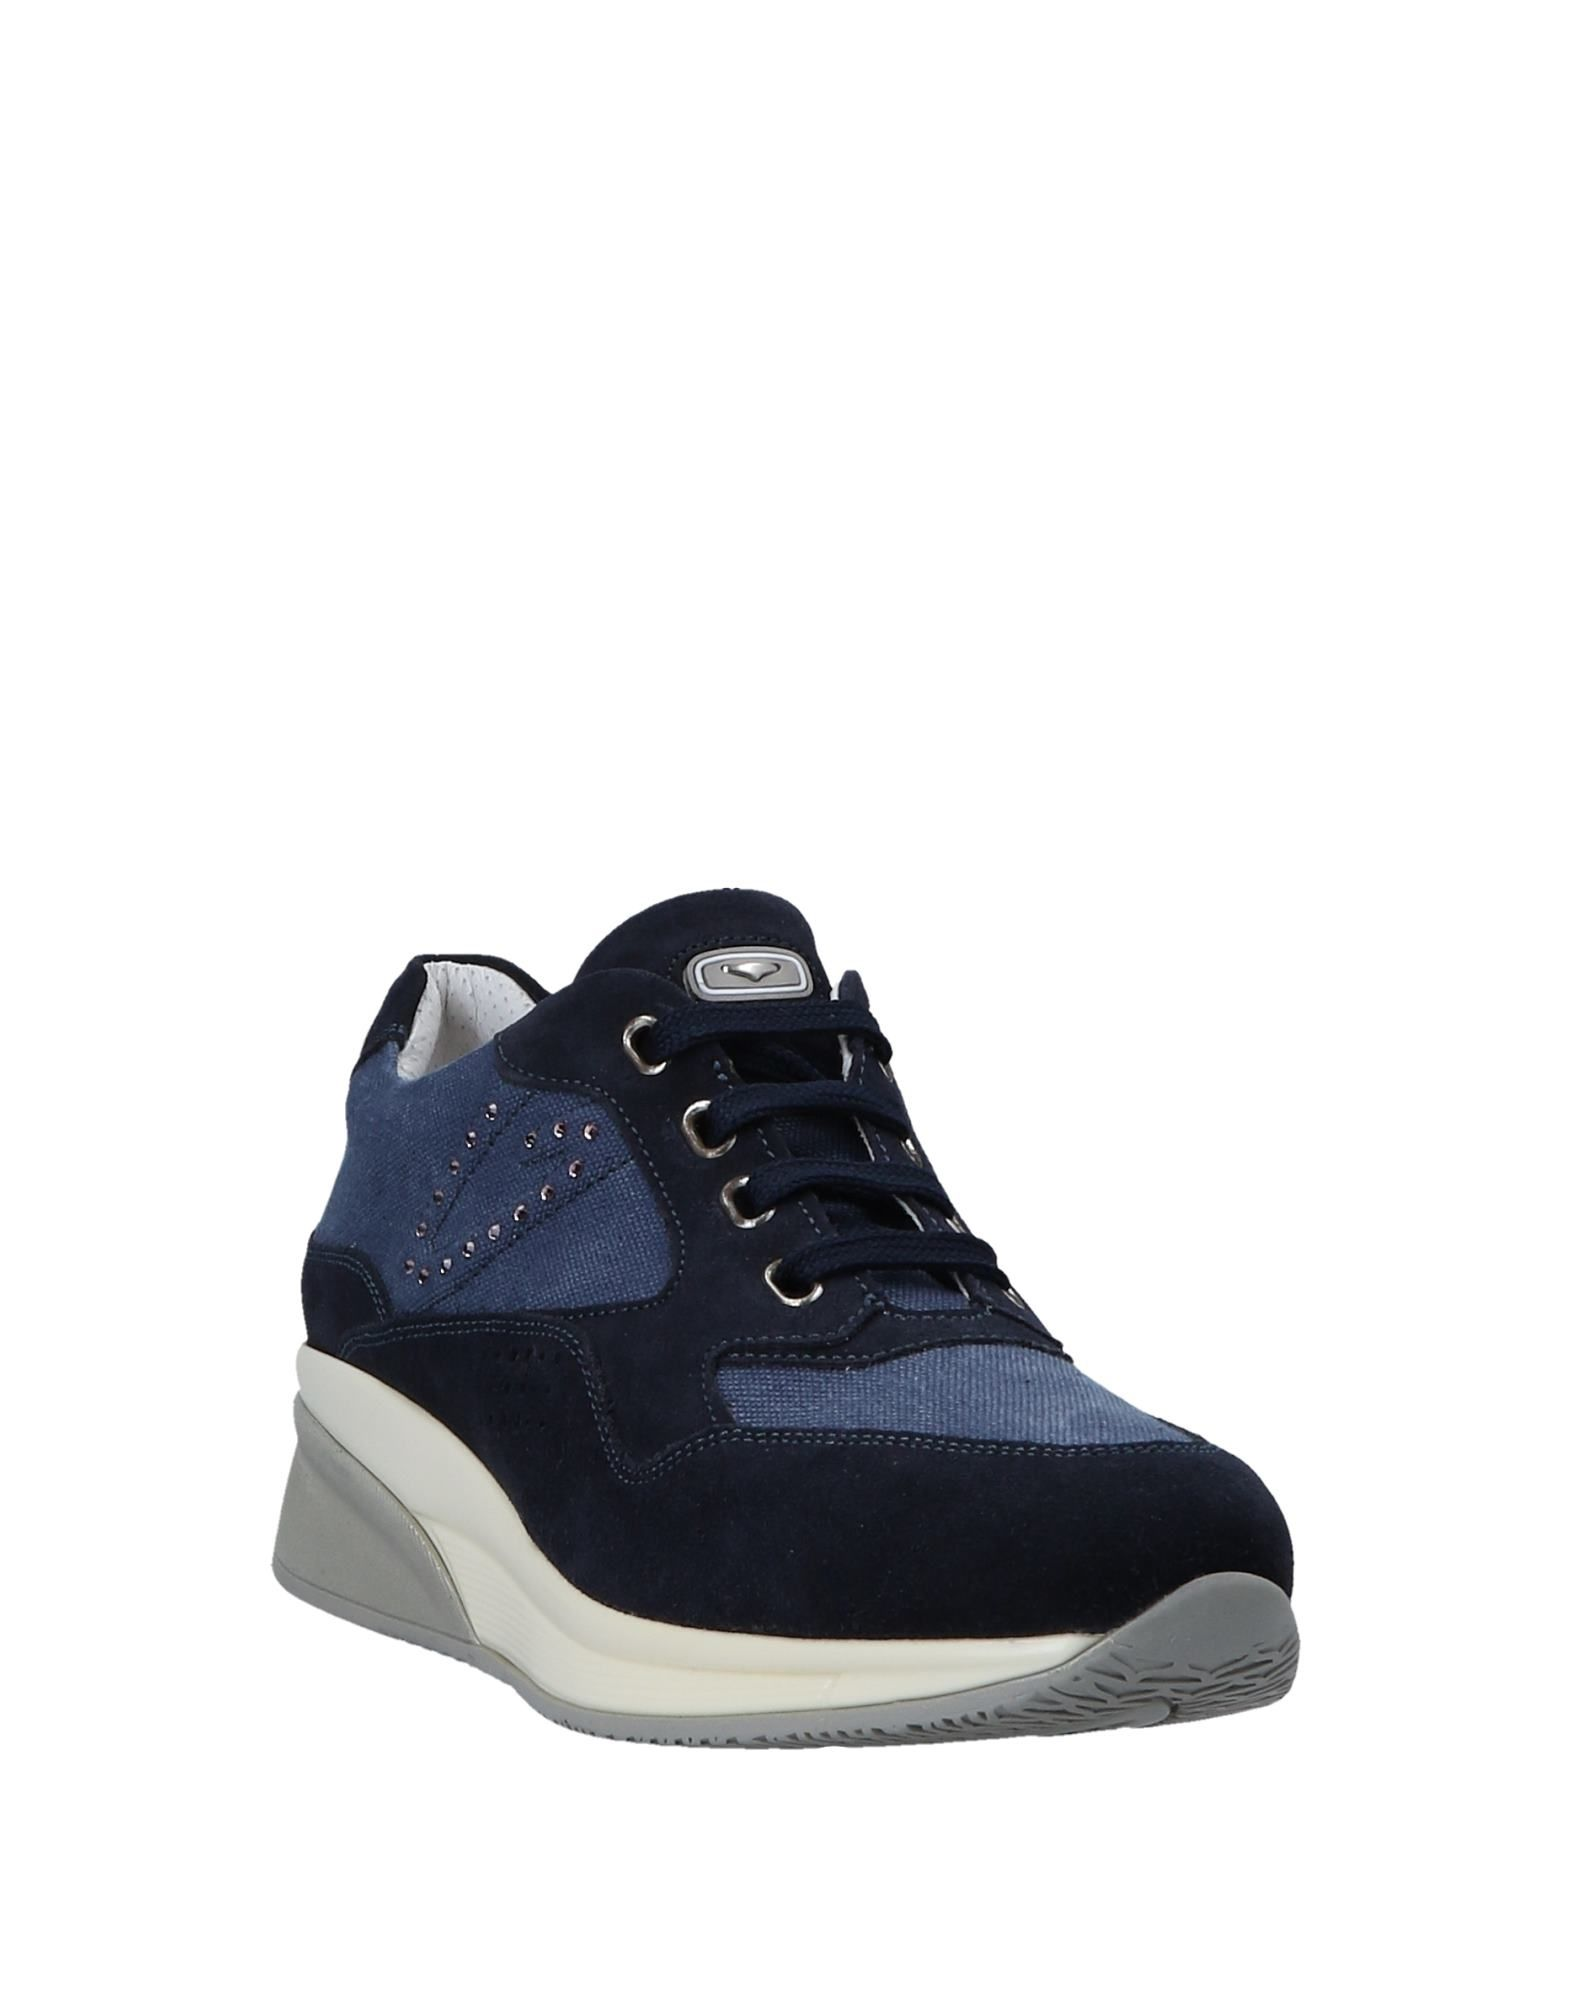 Stilvolle Sneakers billige Schuhe Alberto Guardiani Sneakers Stilvolle Damen  11561543BO f06b3f